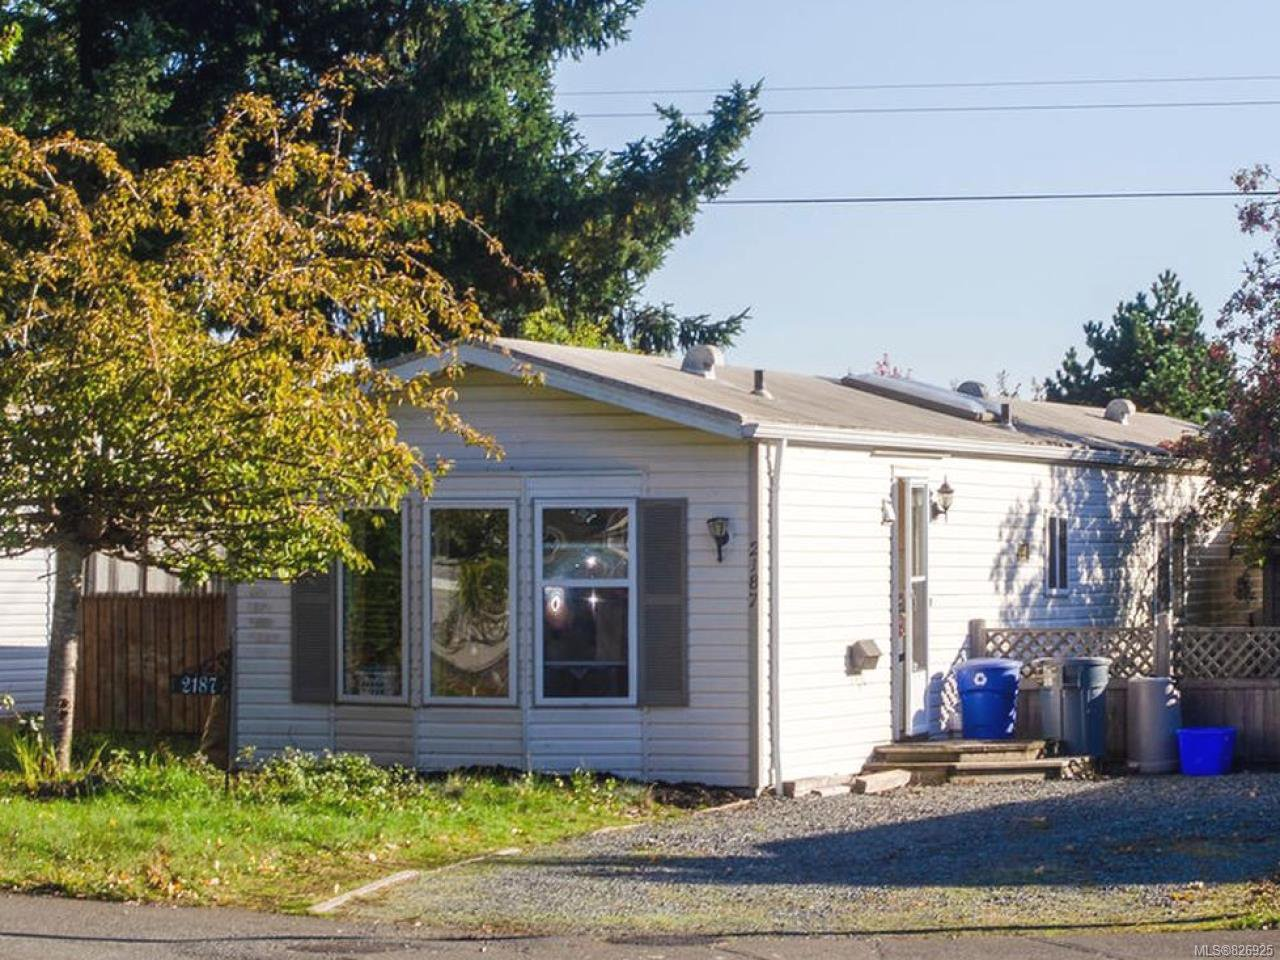 Main Photo: 2187 Stadacona Dr in COMOX: CV Comox (Town of) Manufactured Home for sale (Comox Valley)  : MLS®# 826925